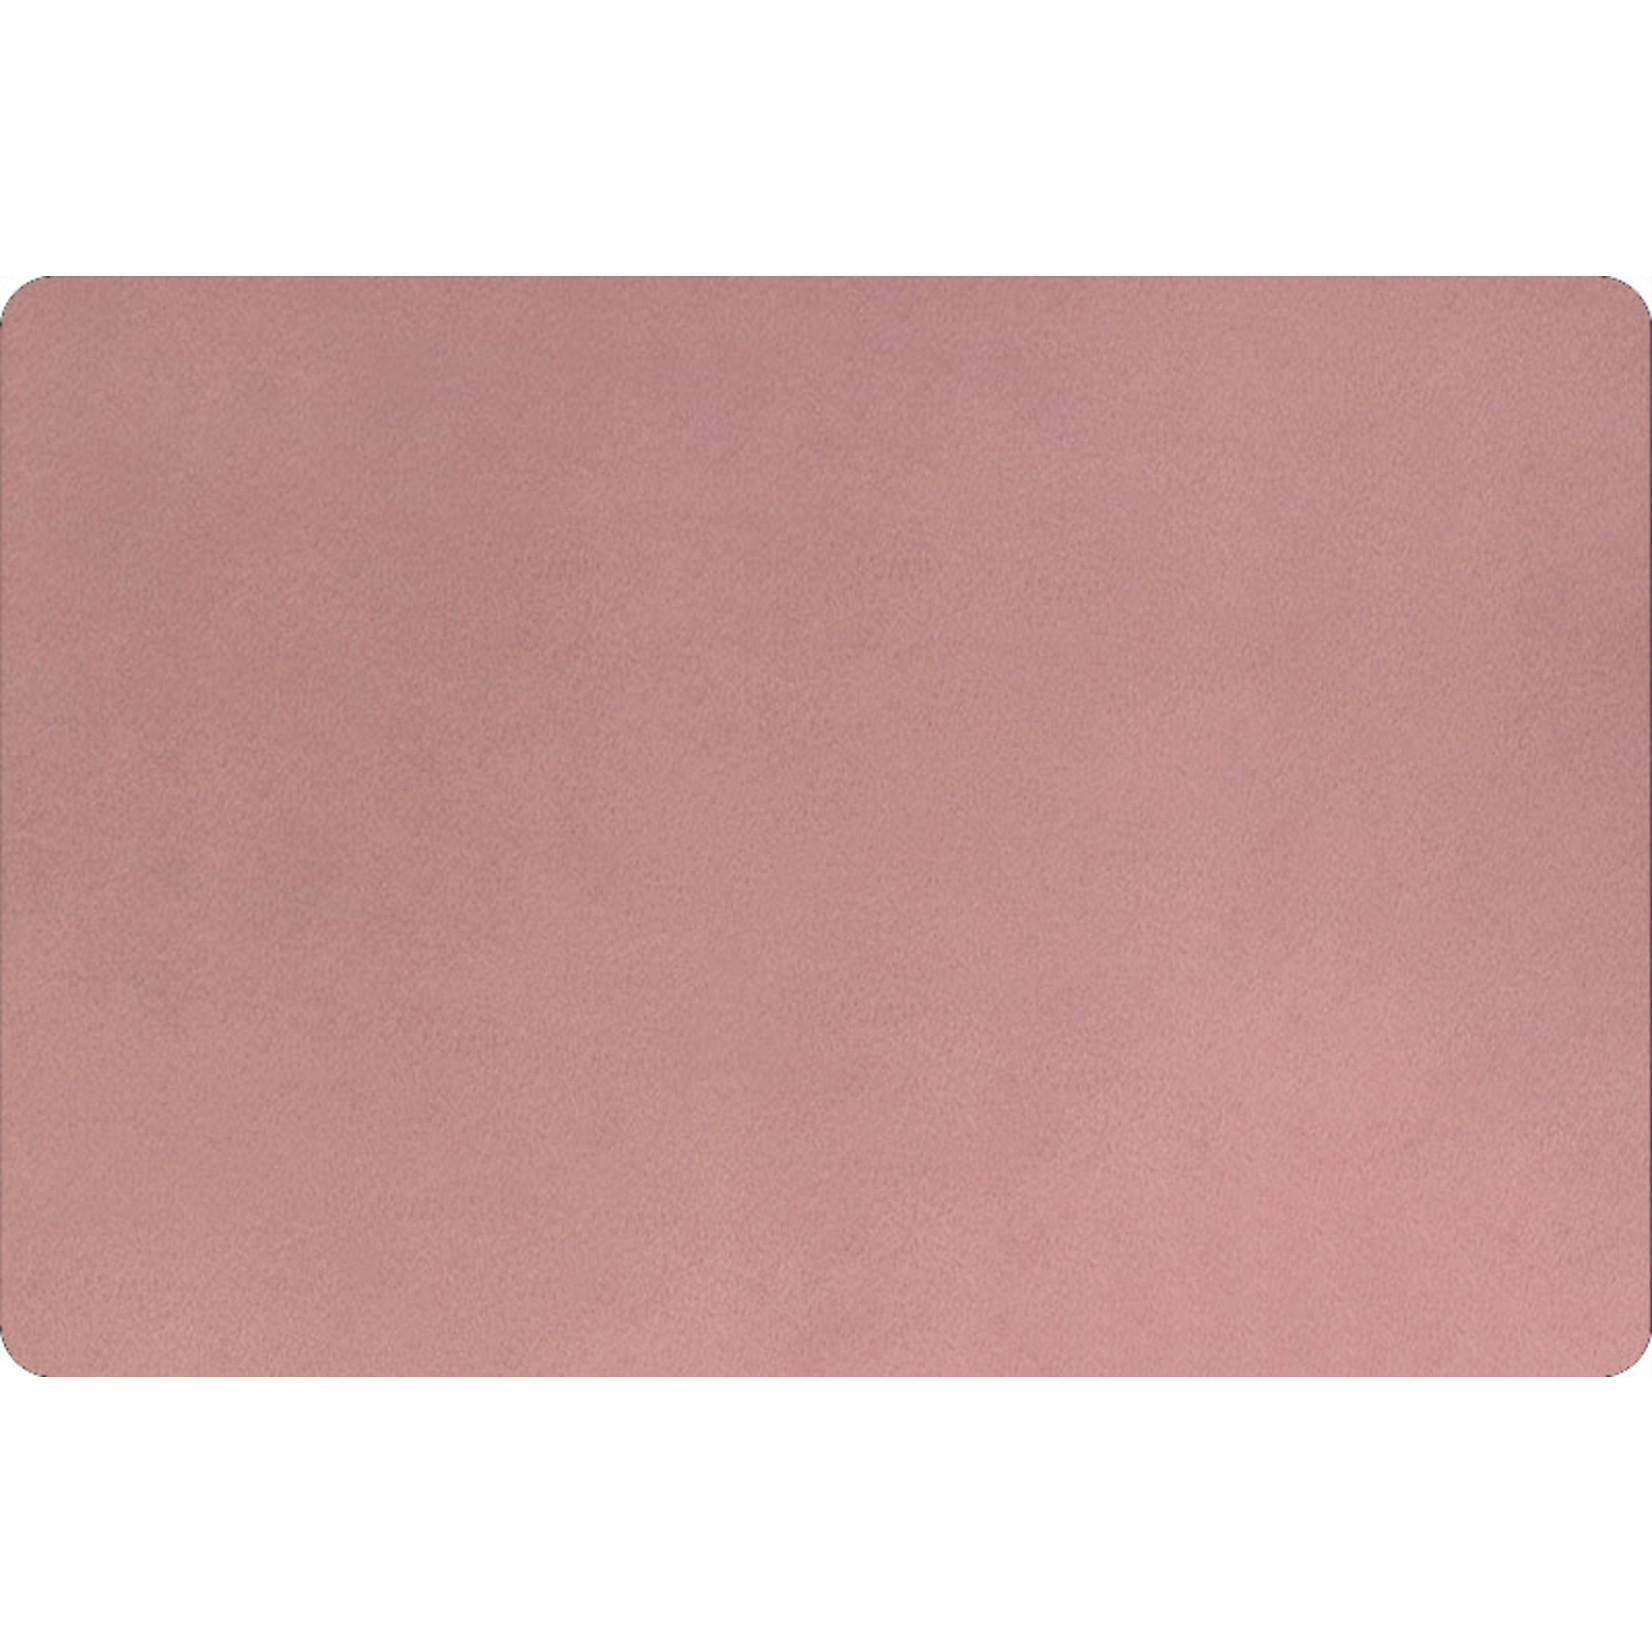 """Shannon Fabrics Minky, Extra Wide Solid Cuddle3, 90"""" Woodrose, (by the inch)"""